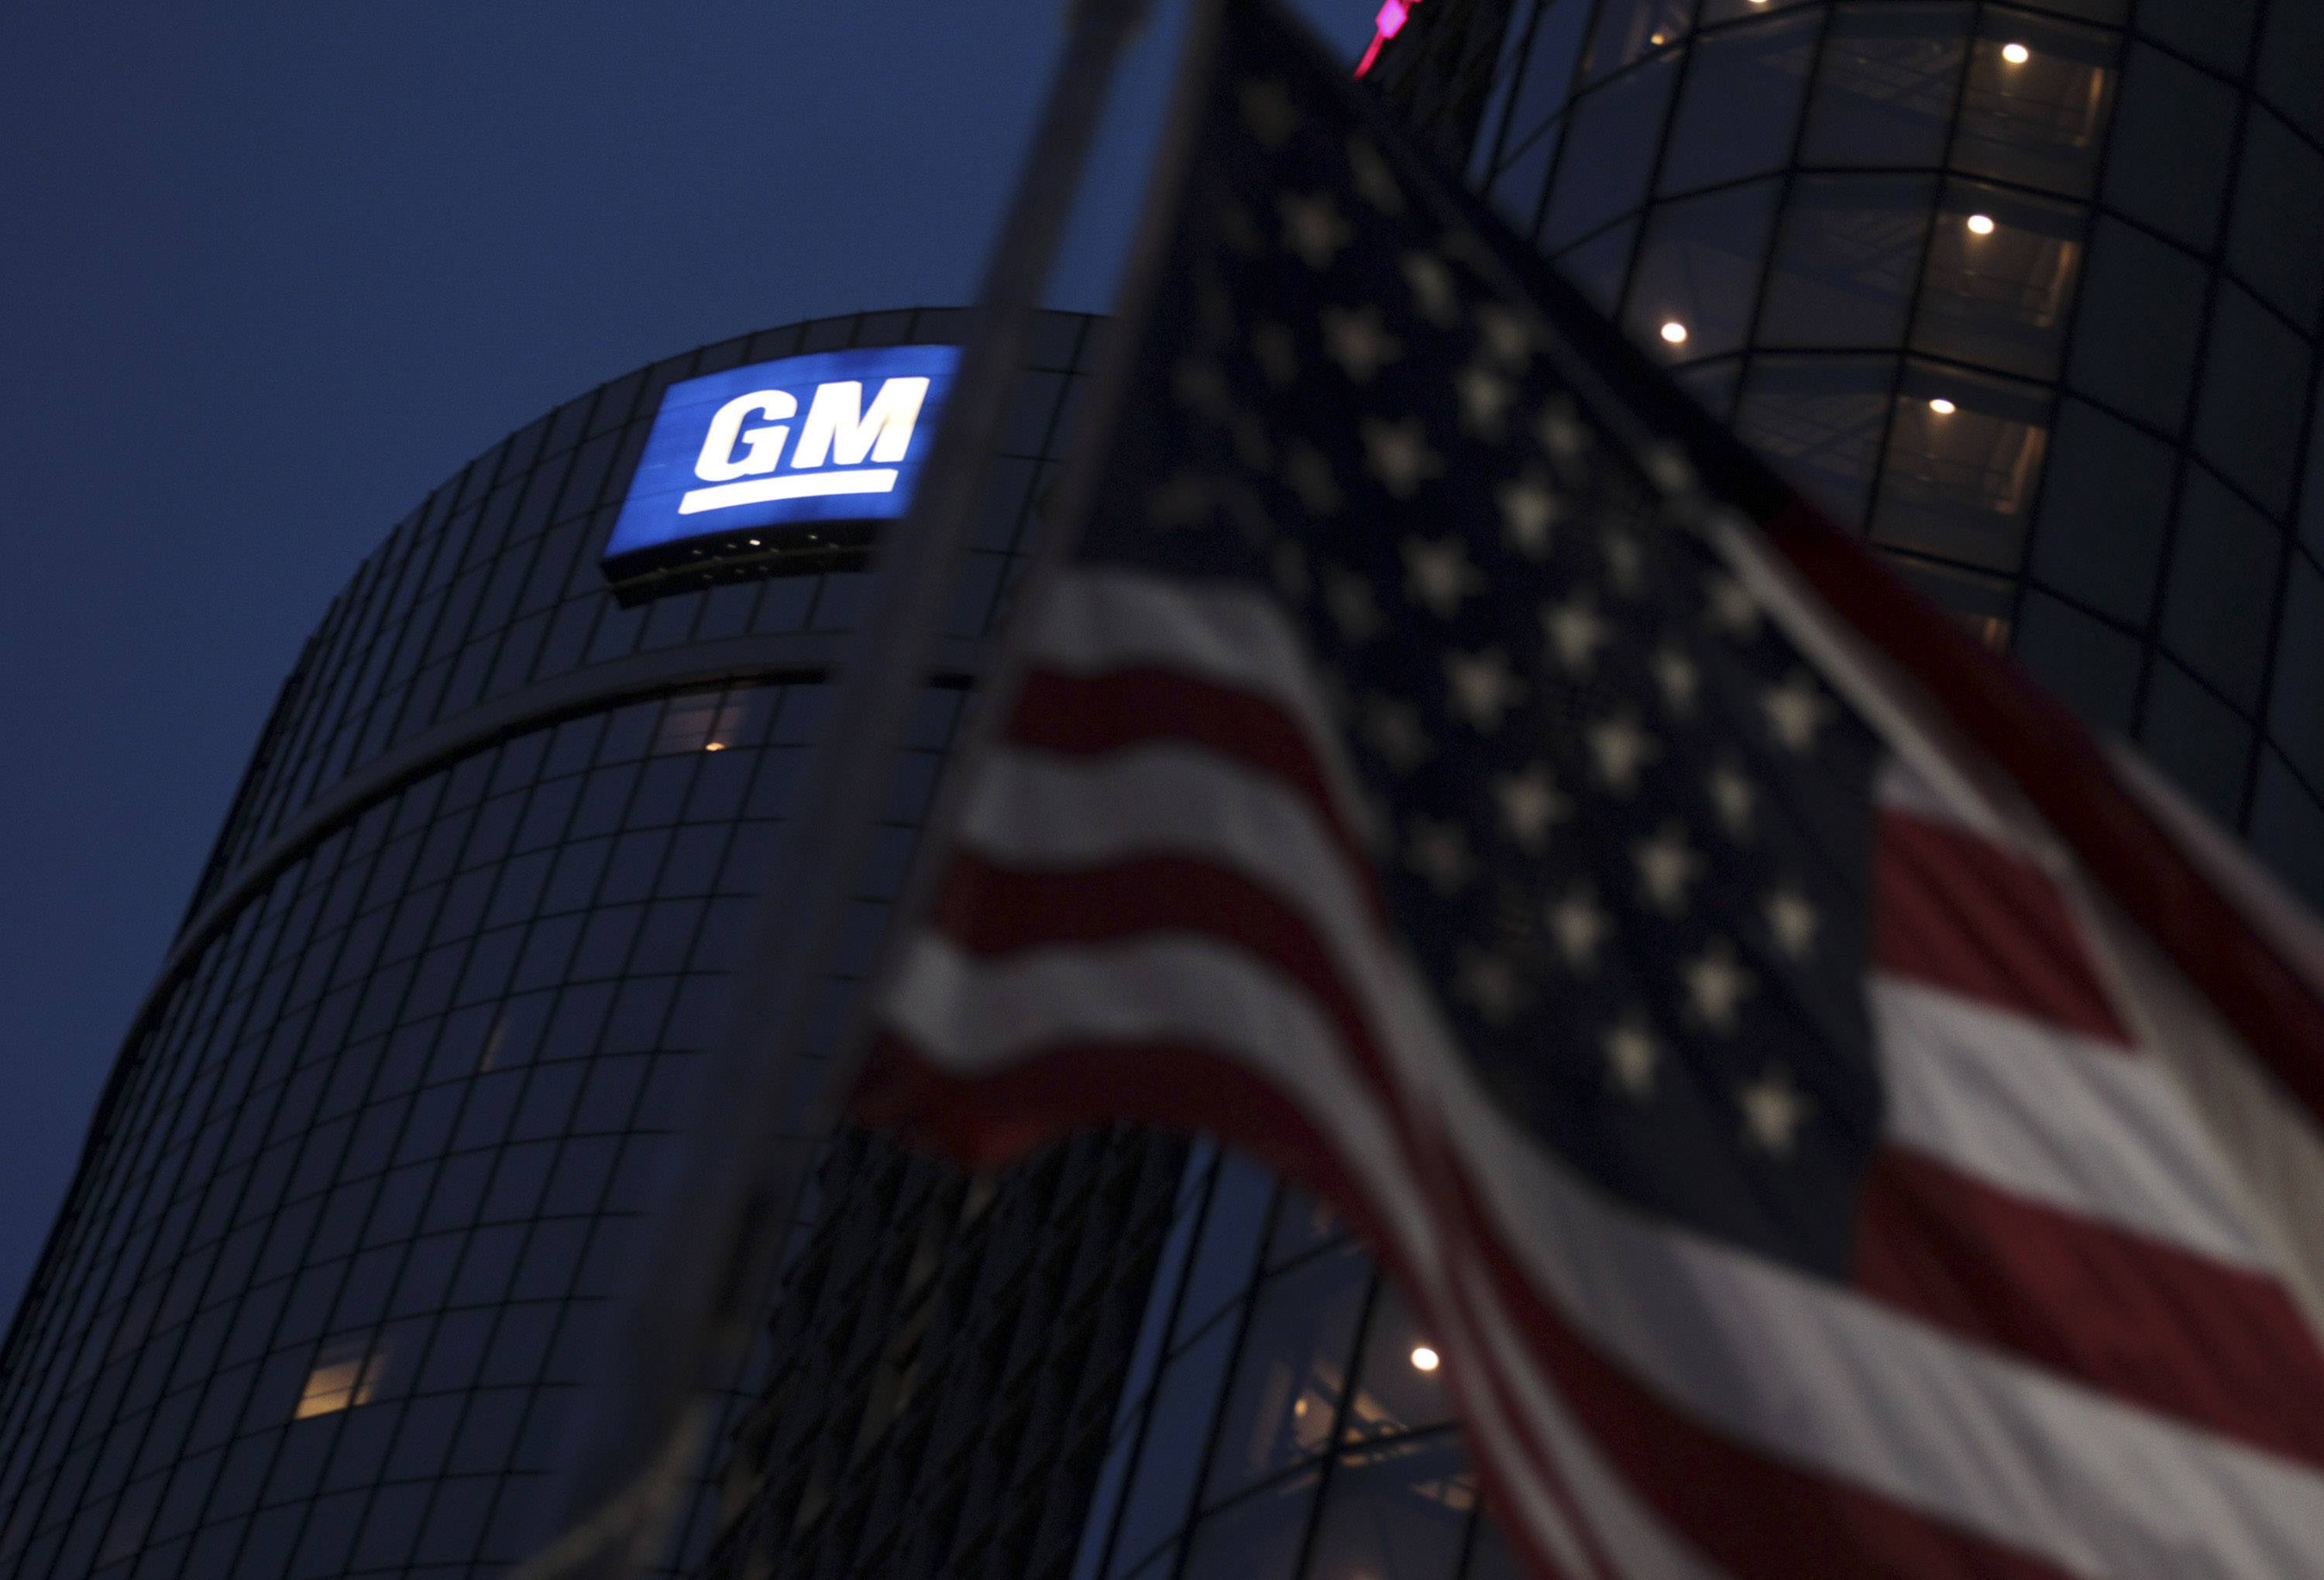 GM is facing condemnation for its handling of faulty ignition switches tied to at least 13 deaths. U.S. regulators are probing GM over the way it dealt with flaws it first saw as far back as 2001, a sign of intensifying scrutiny of safety practices in the auto industry.